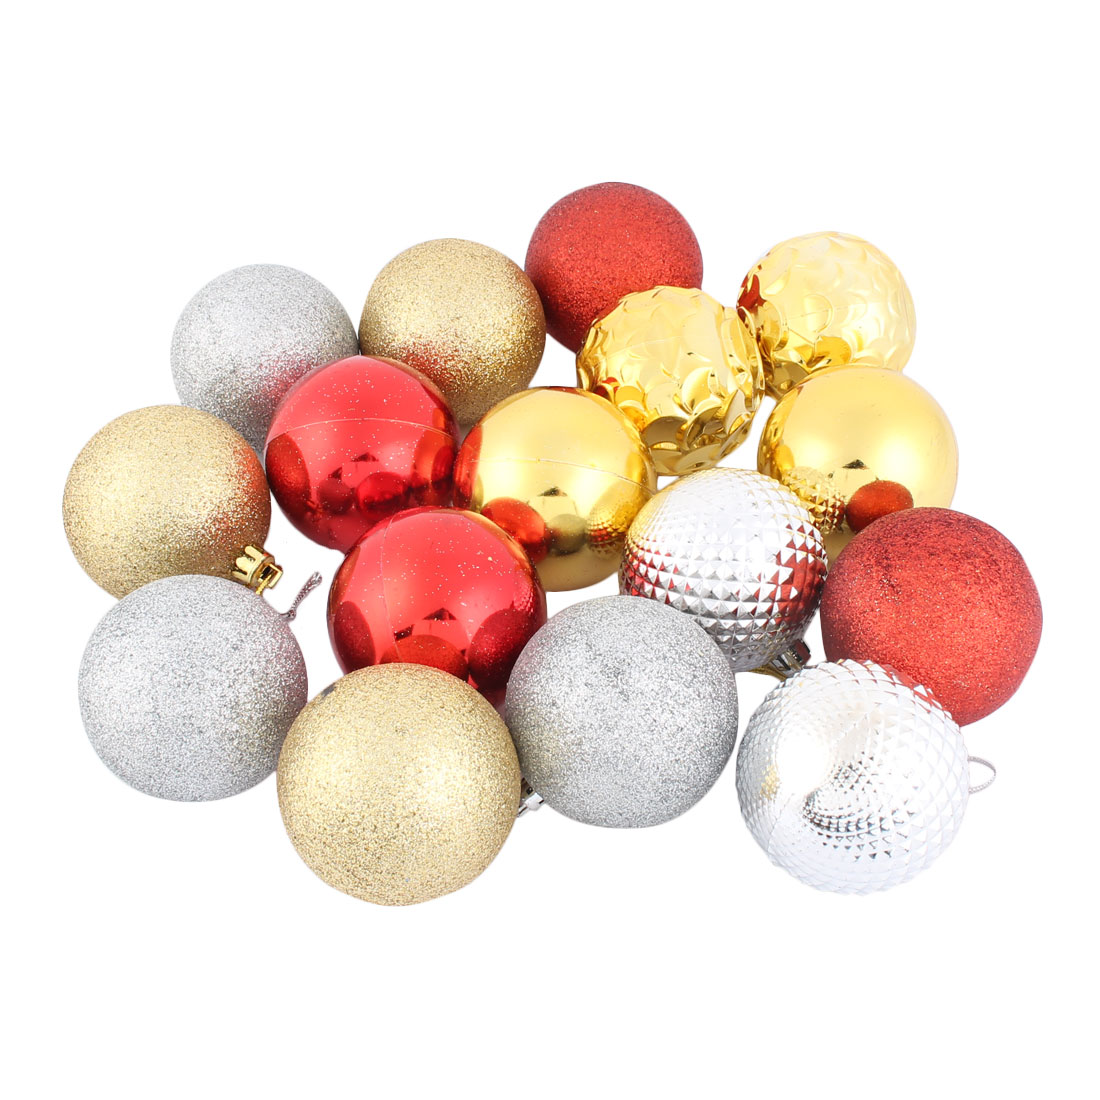 Festival Christmas Xmas Tree Ornament Party Yard Decor Hanging Balls Baubles 14pcs